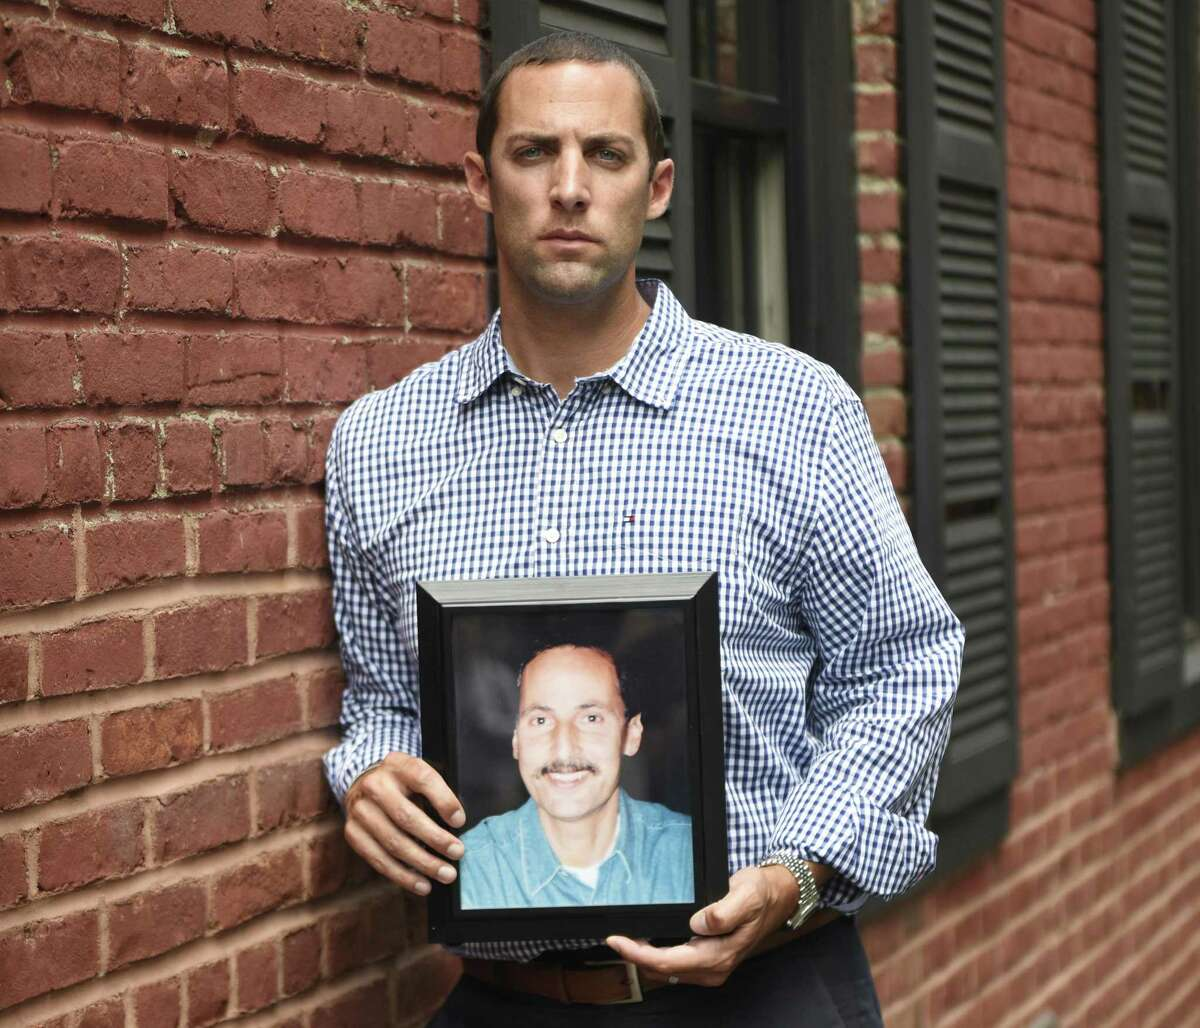 Michael Pascuma poses with a photograph of his father. As a was a 20-year-old student at Sacred Heart University, Pascuma lost his father, Michael, in the World Trade Center attacks 9/11.